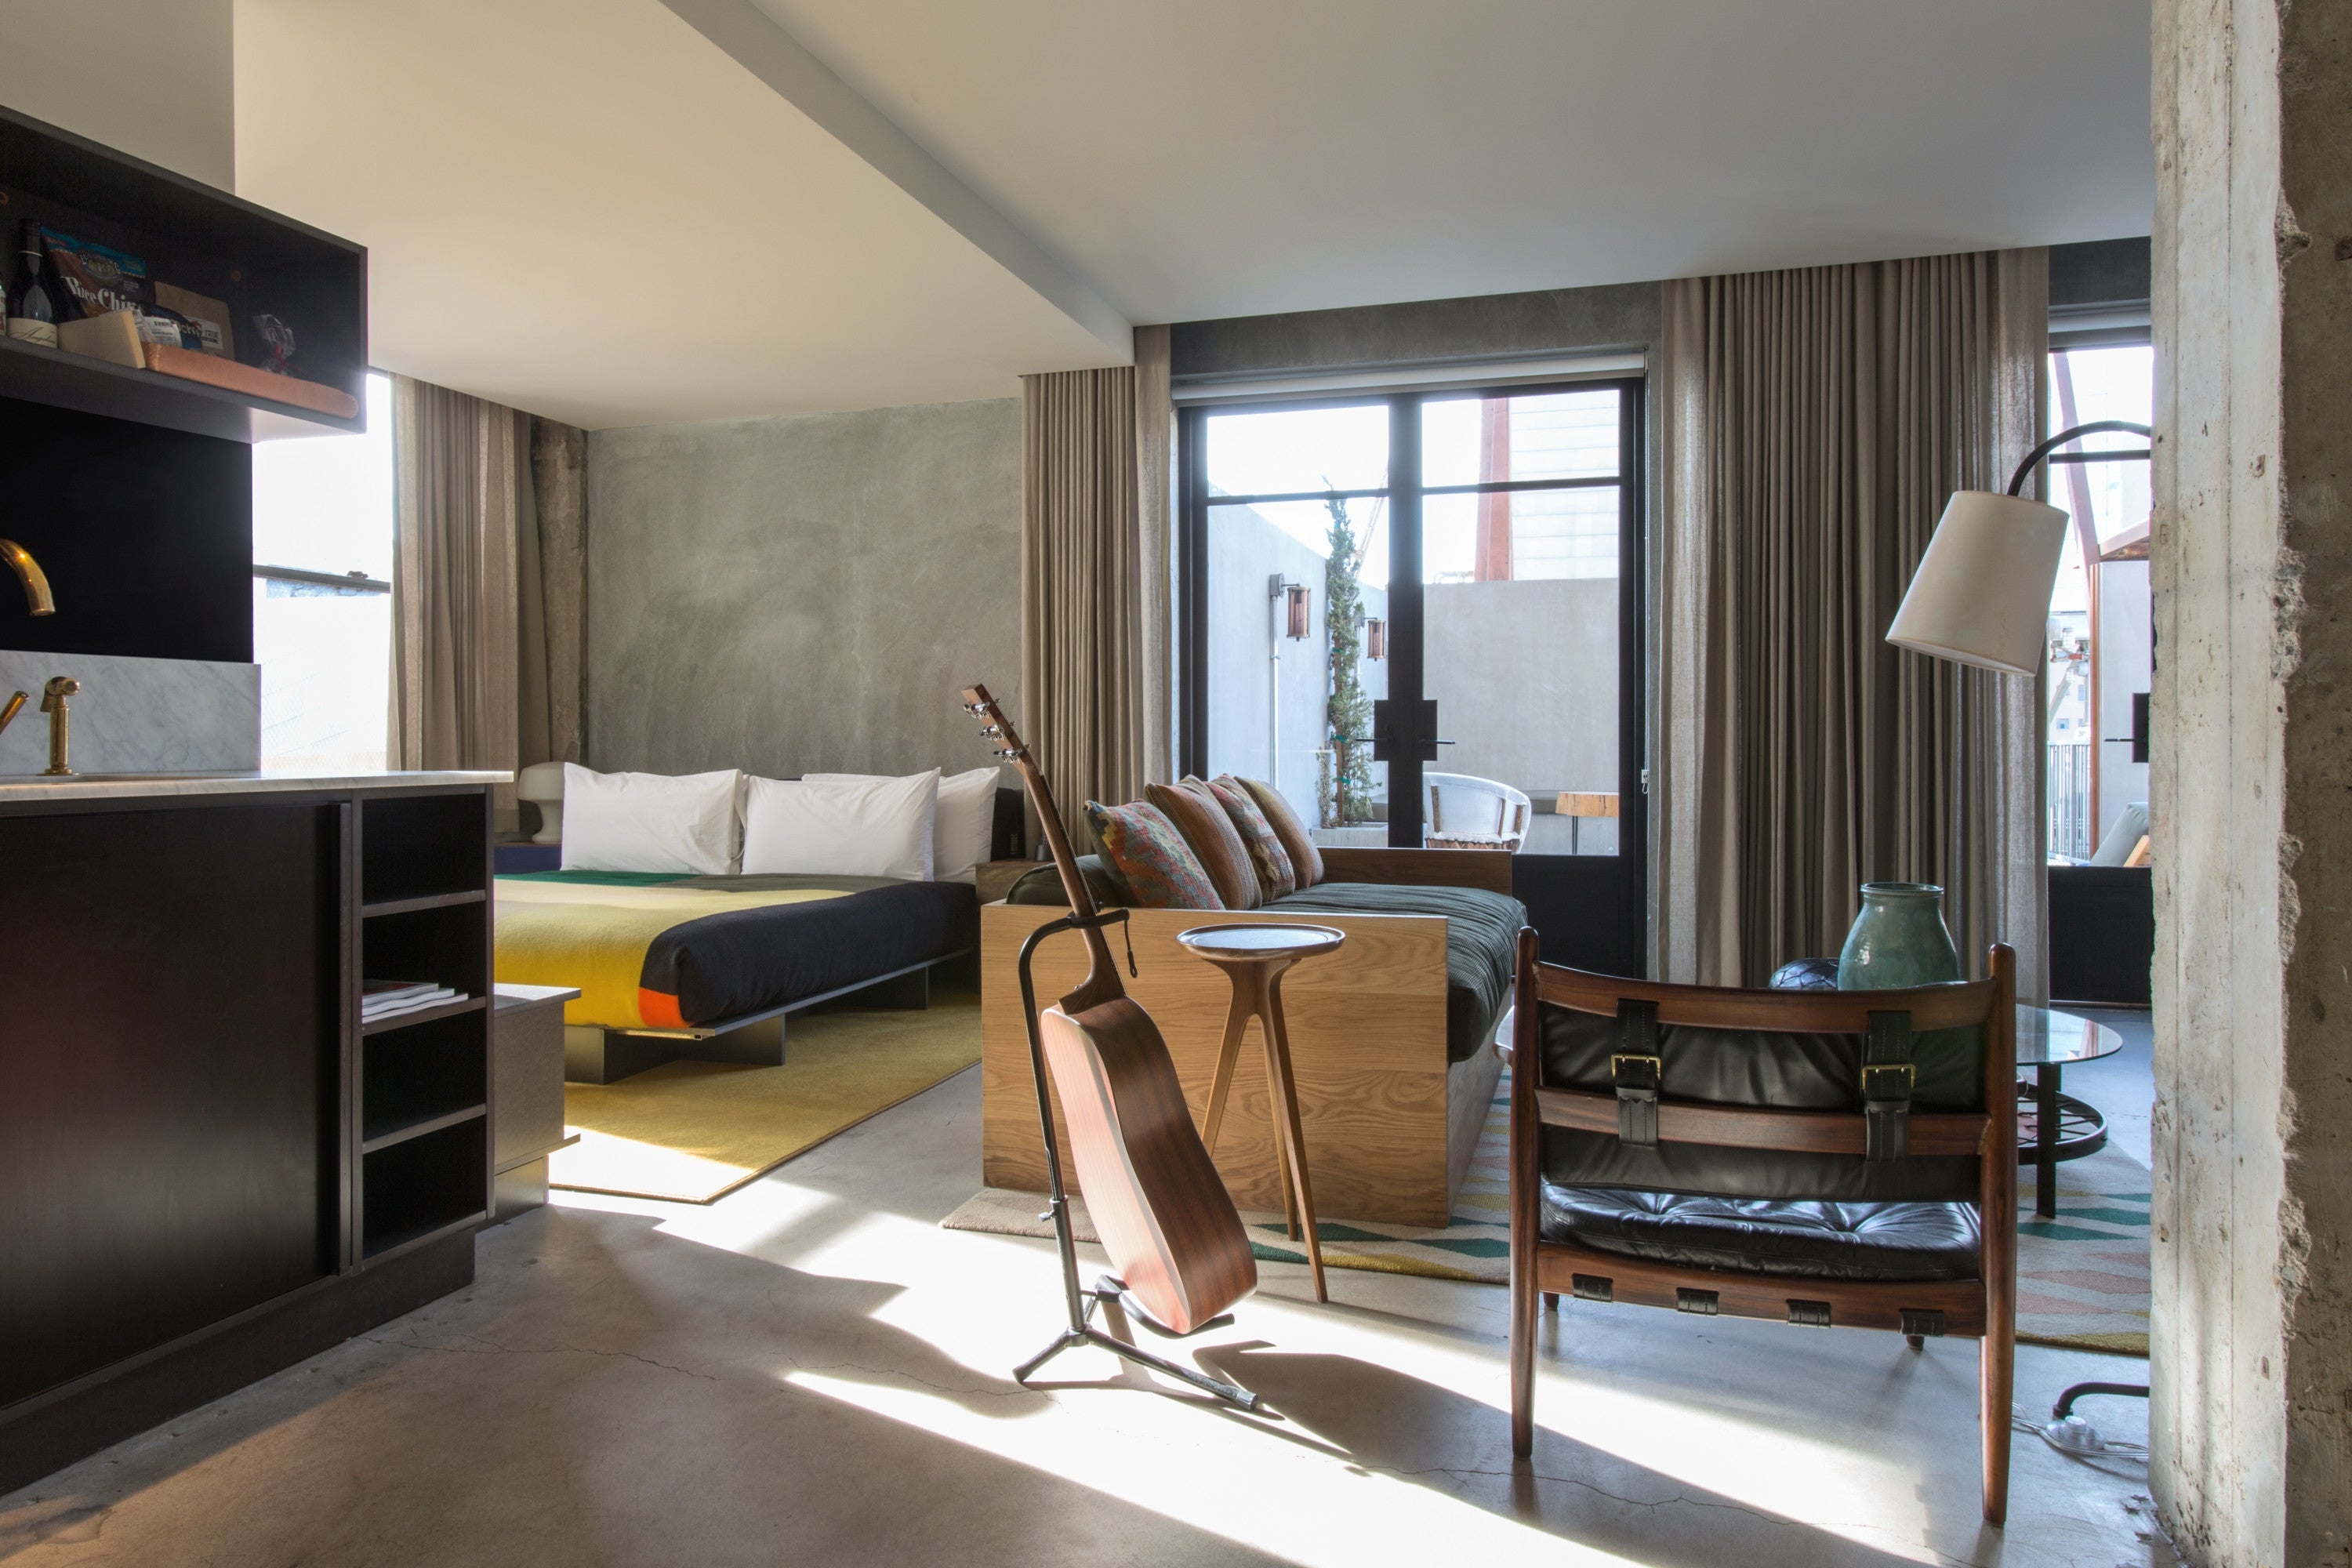 Hotels In Seattle >> Ace Hotel Downtown Los Angeles: The Story of an L.A. Icon   Discover Los Angeles